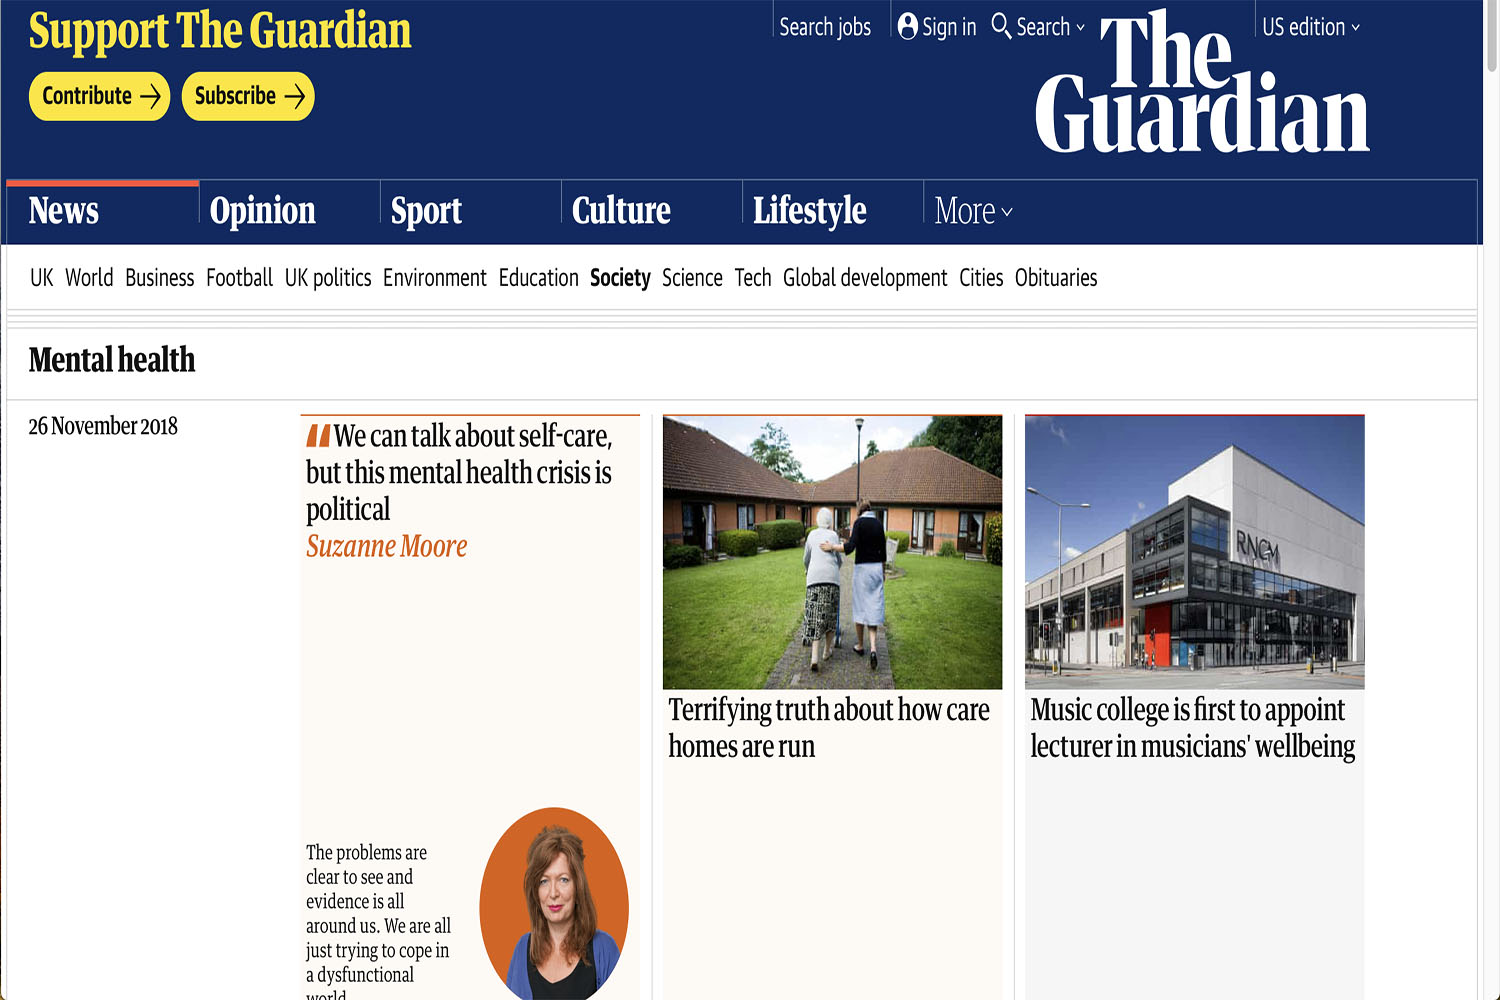 The Guardian is a UK and US newspaper that uploaded articles on mental health. They upload articles of these types to help readers identify their psychological well-being.